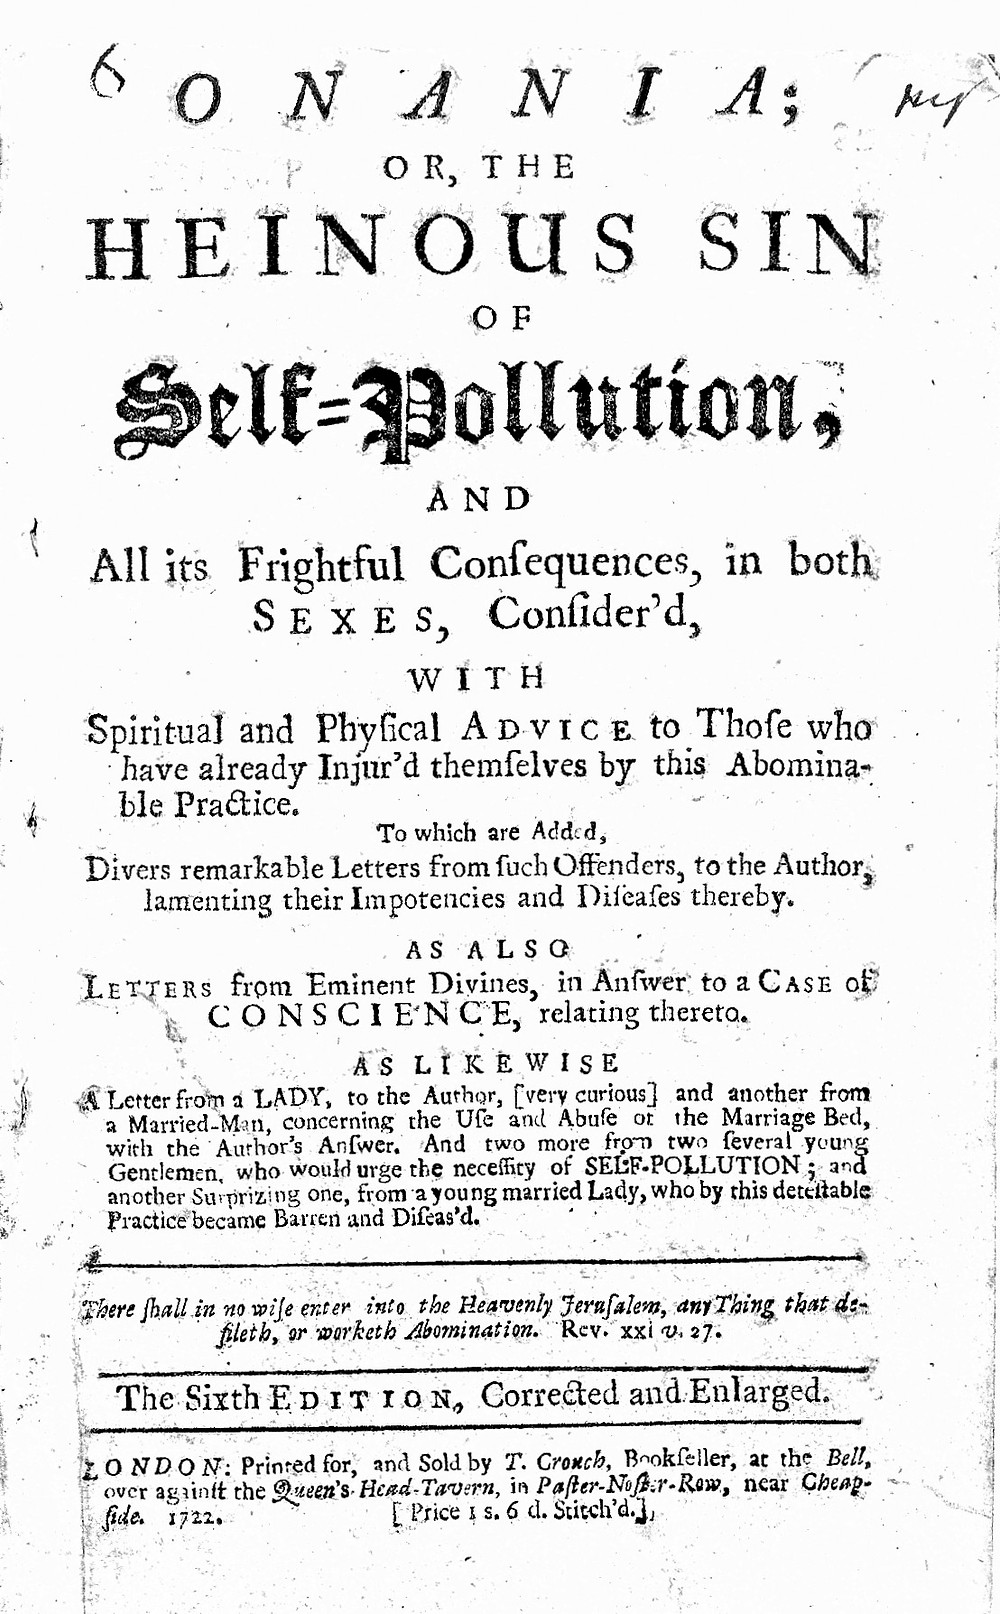 Title page of a Eighteenth century popular Pamphlet on the effects of masturbation on the health of the individual. This pamphlet was one of the first to warn against the dangers of onanism